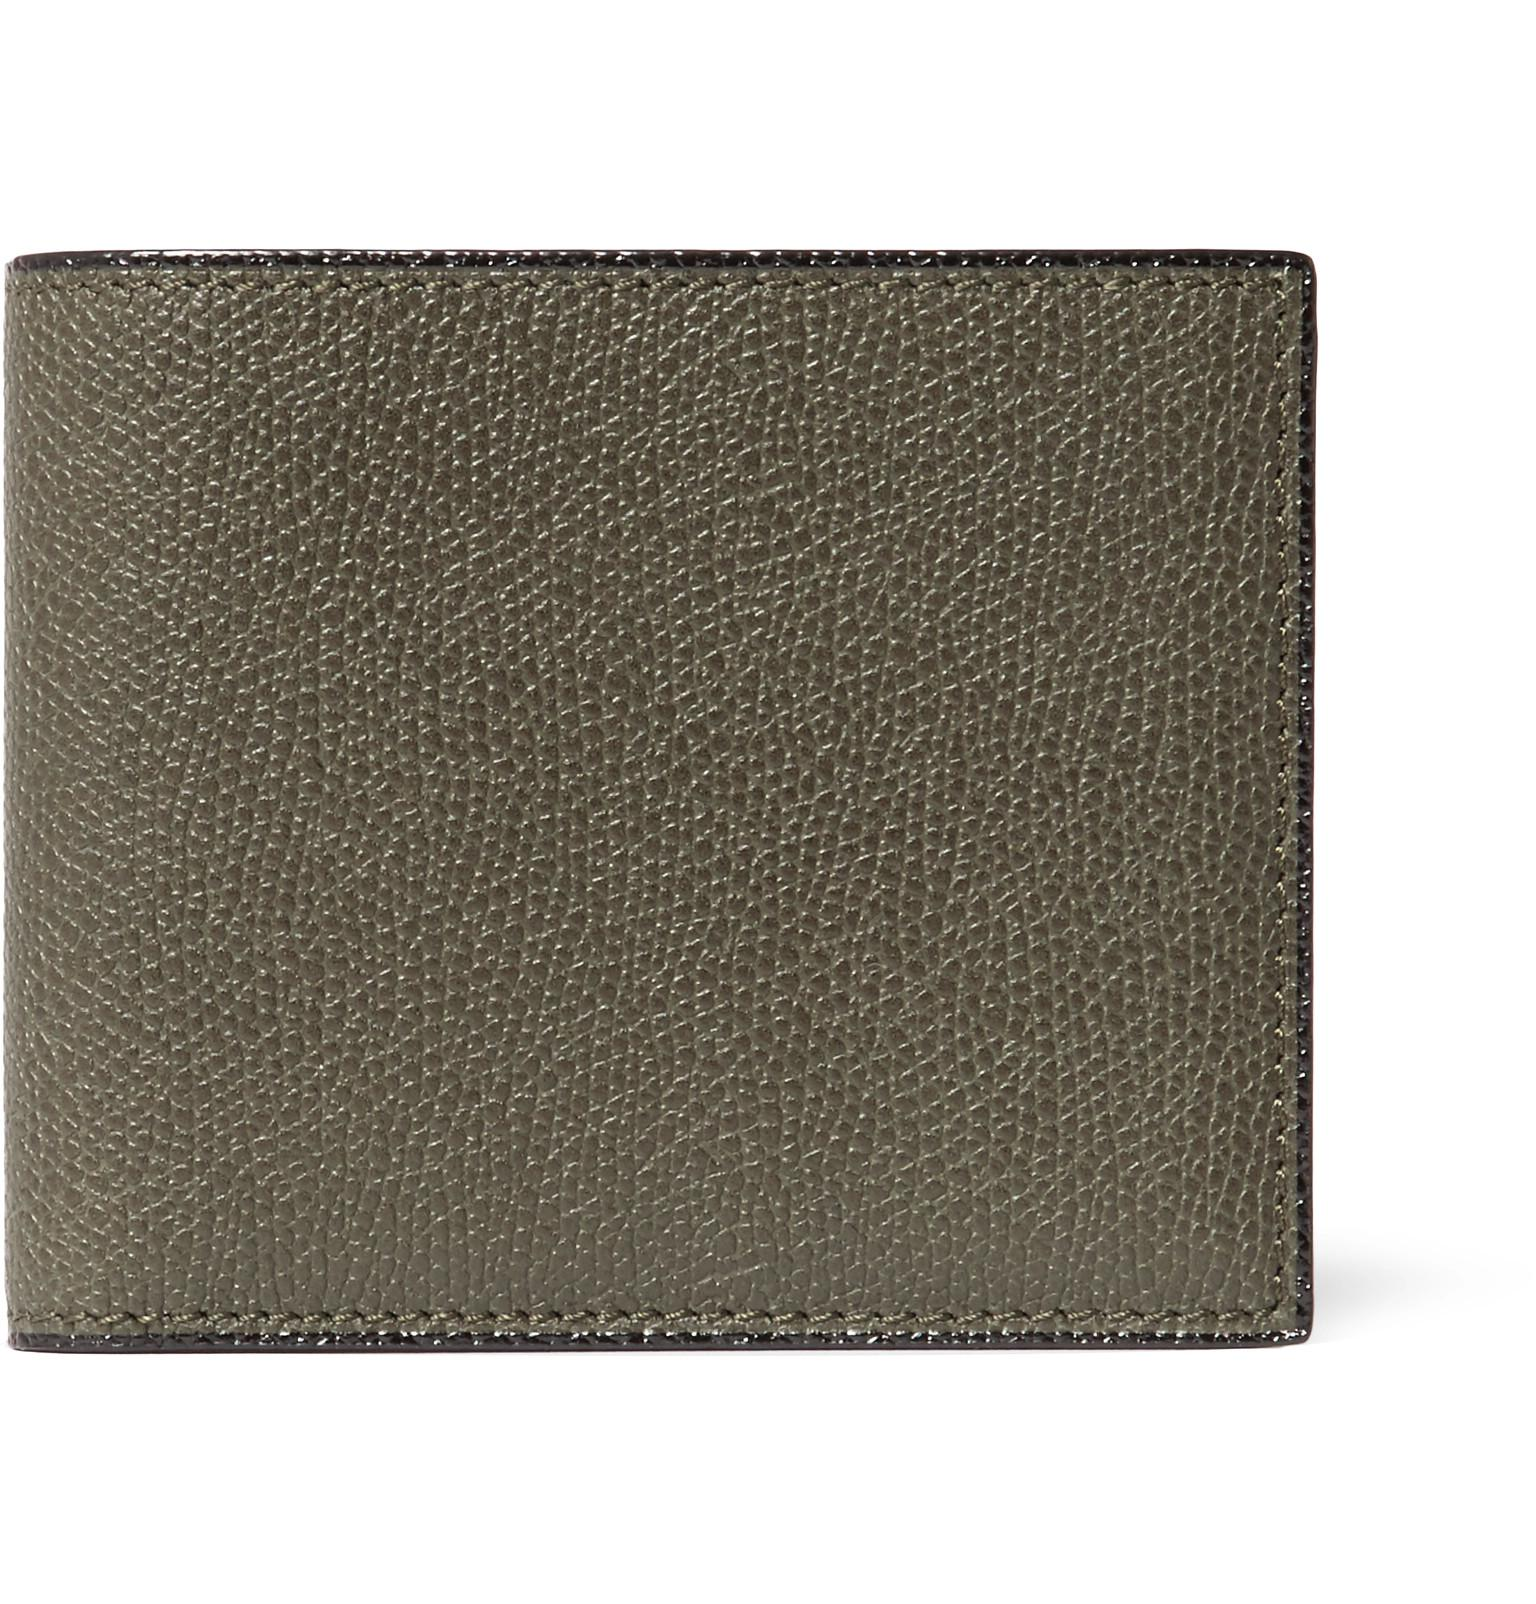 Outlet Big Sale VALEXTRA Pebble-grain Leather Billfold Wallet Clearance Purchase Visit New Cheap Price Genuine 487uqhd7Vp